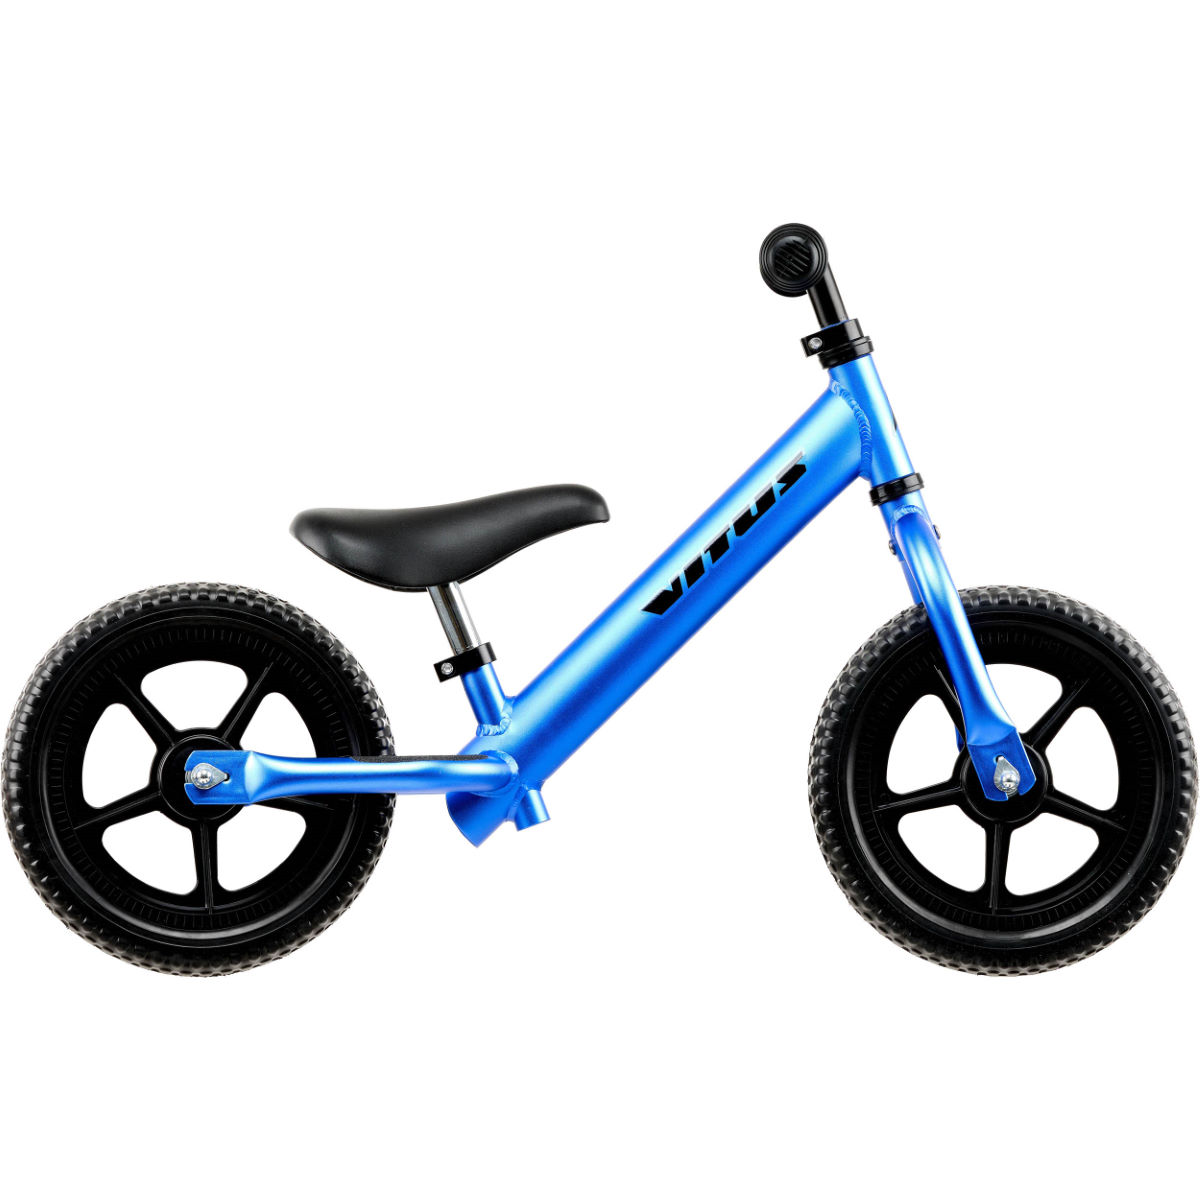 Vitus Vitus Nippy Superlight Balance Bike   Balance Bikes